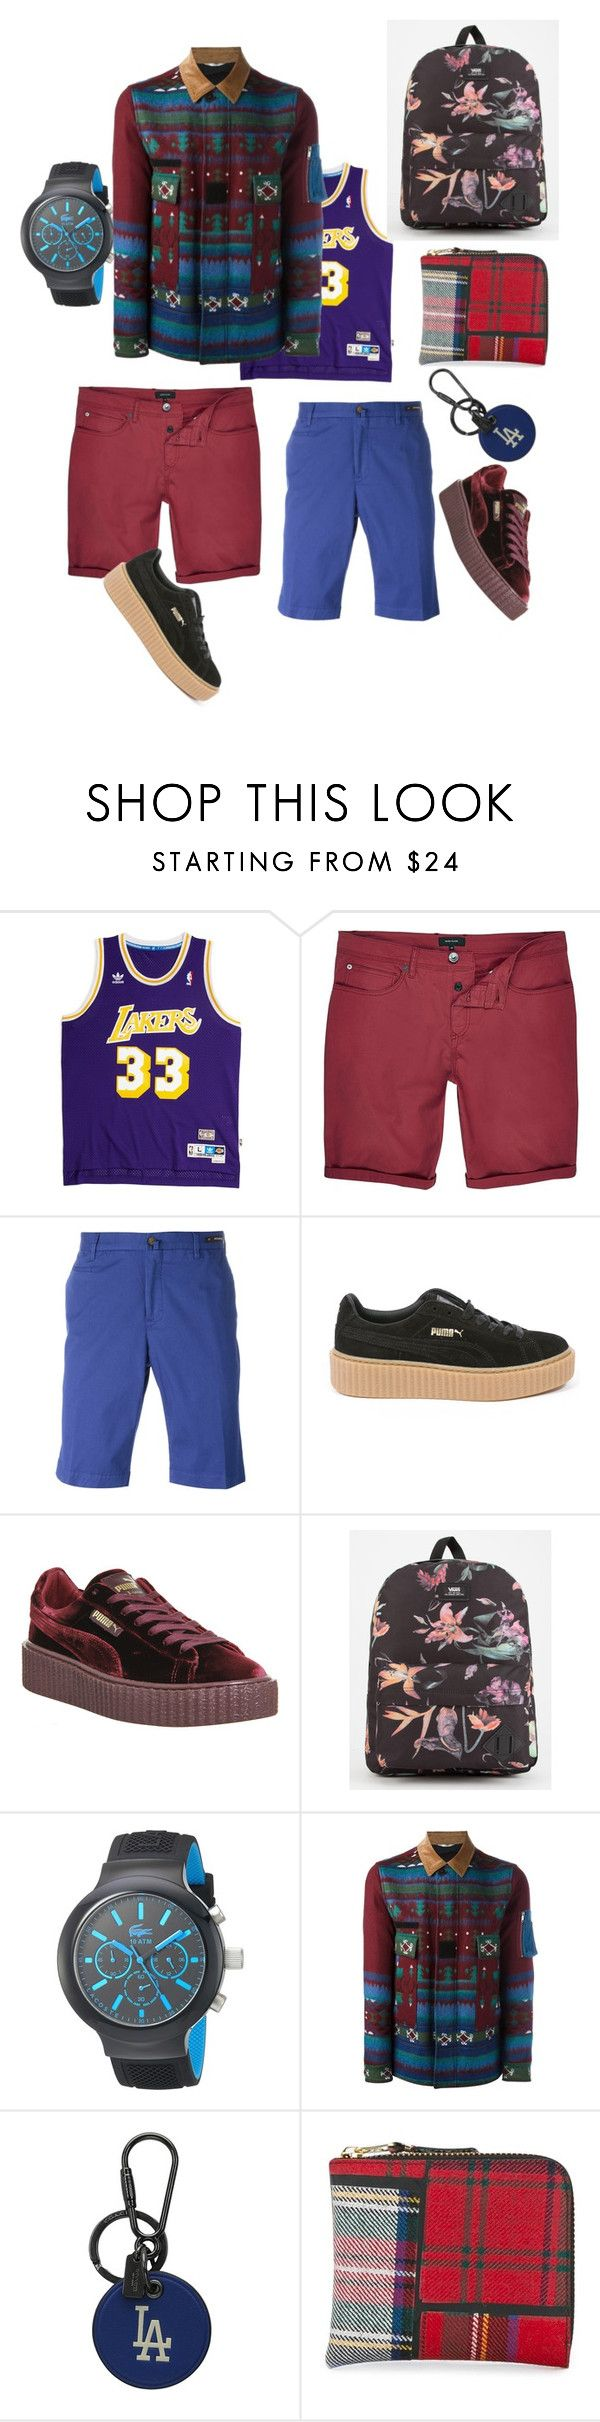 """beach day outfit"" by tommy-el-yhan-pelle on Polyvore featuring Steiner Sports, River Island, PT01 Pantaloni Torino, Puma, Vans, Lacoste, Valentino, Coach, Comme des Garçons and men's fashion"